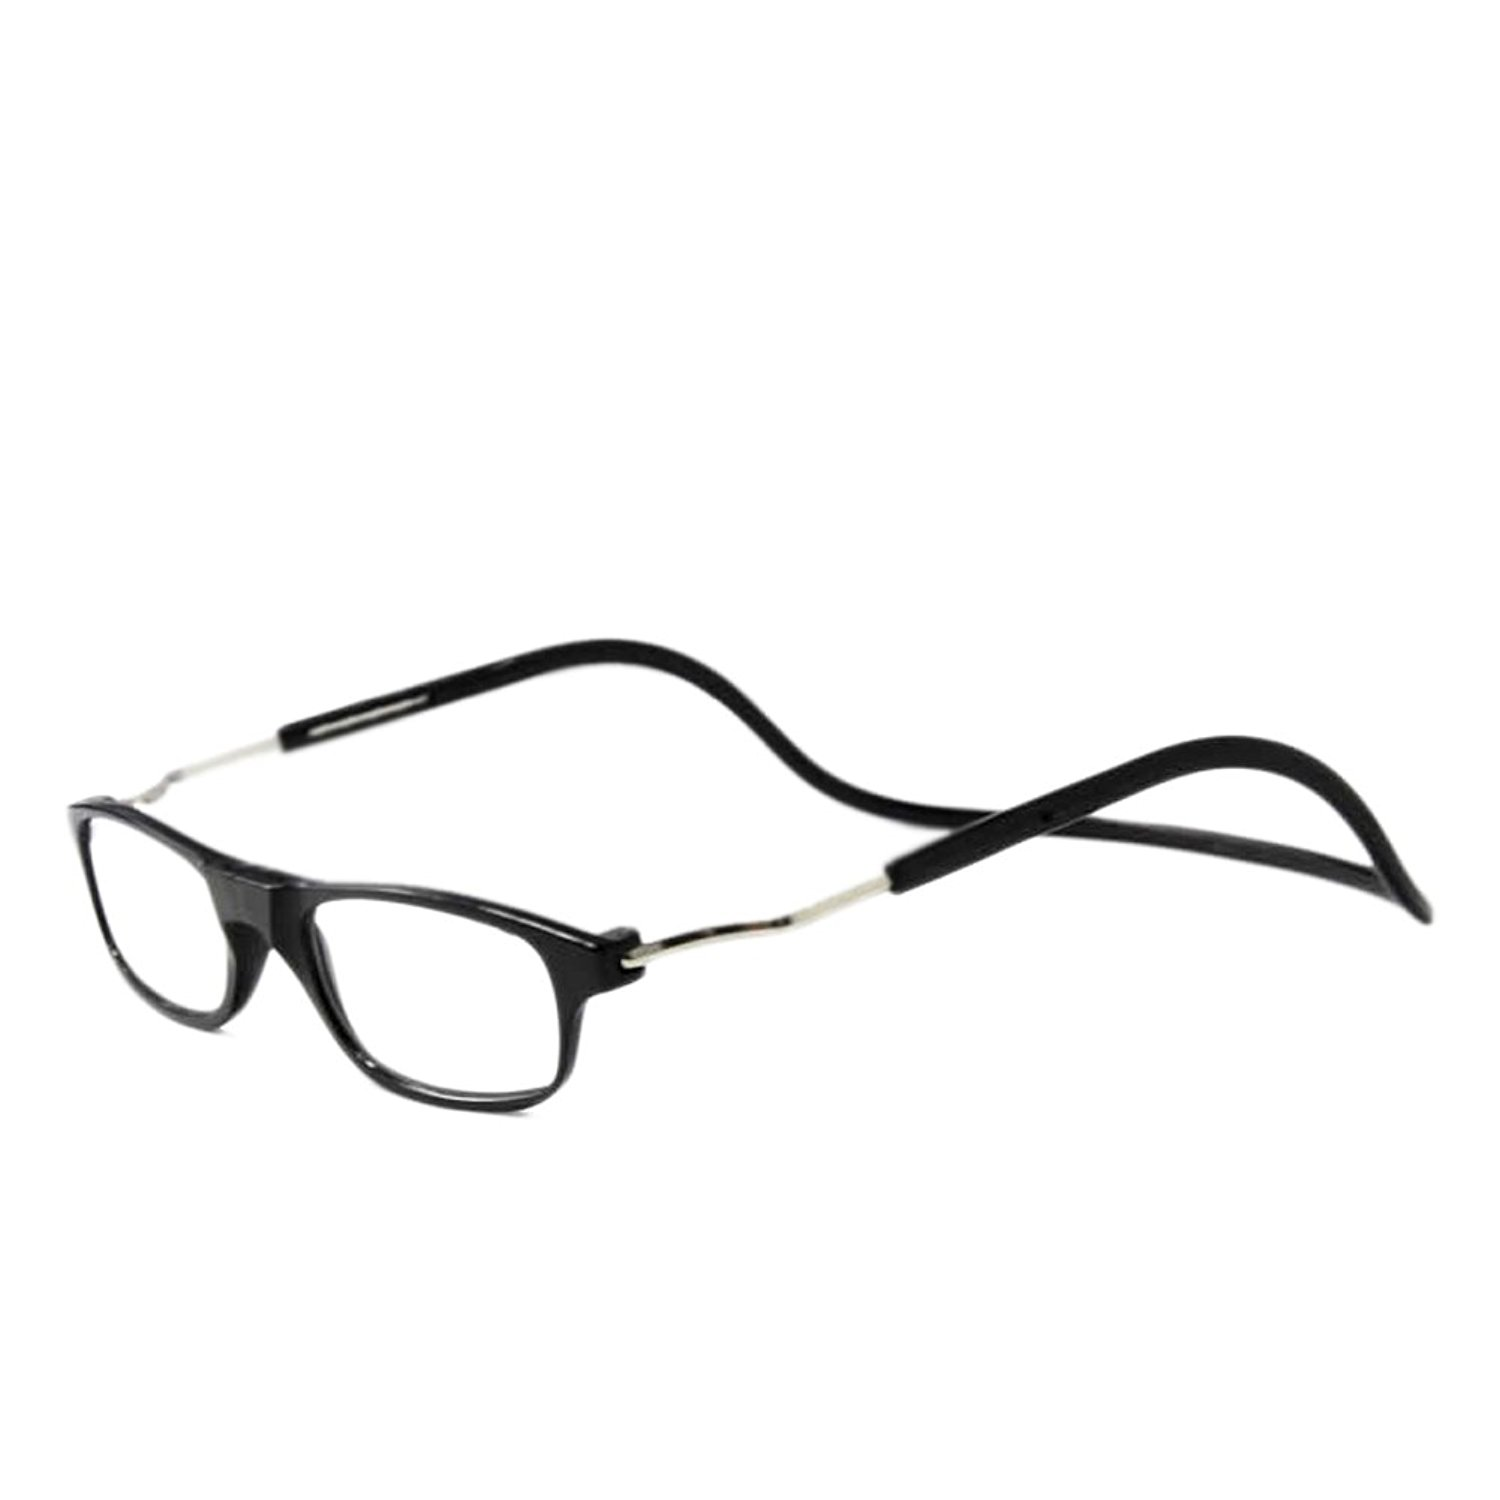 6d64bf2c16ba Get Quotations · Magnetic Reading Glasses